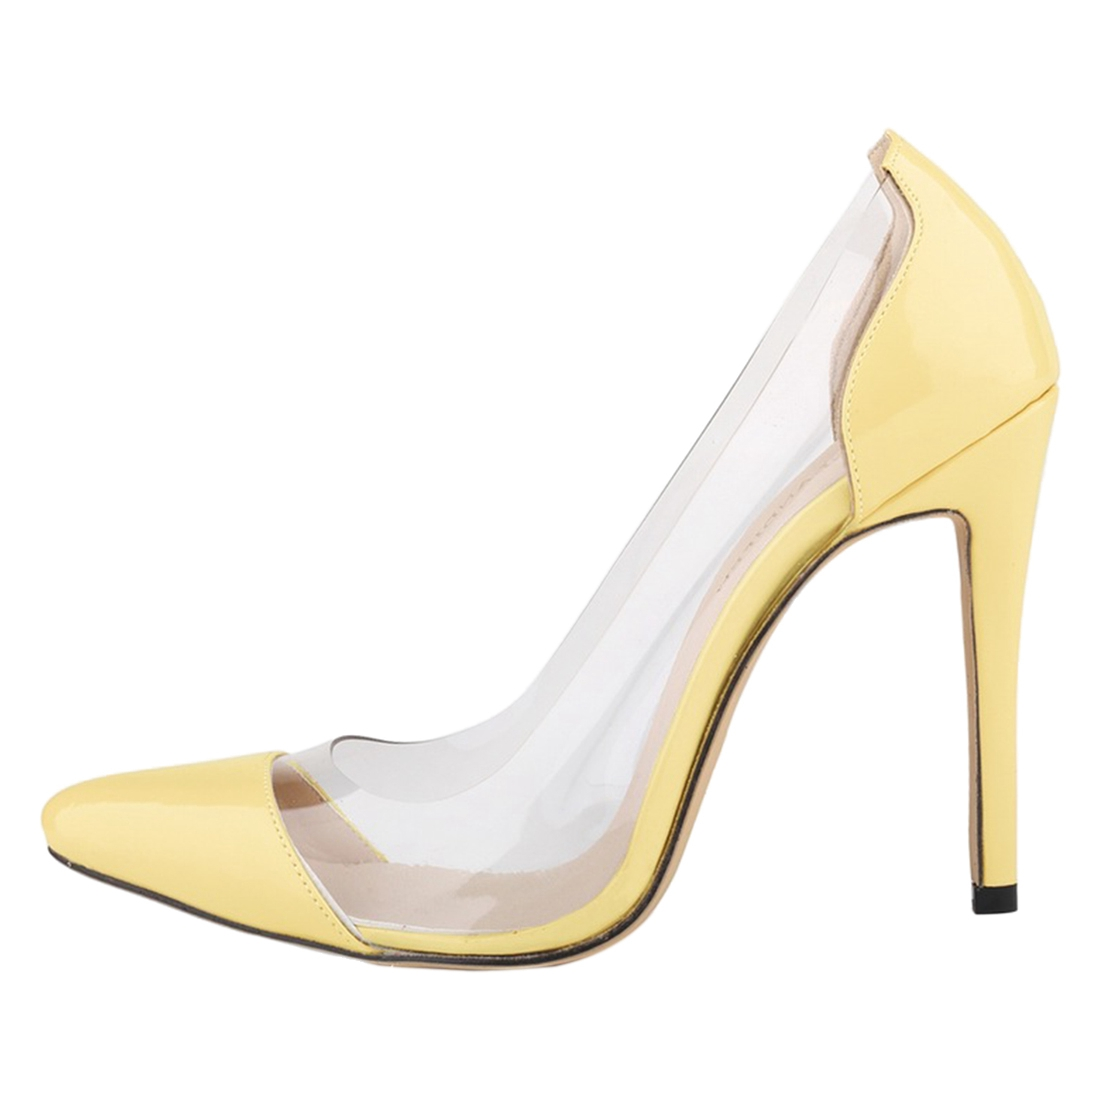 LOSLANDIFEN women summer new high-heeled shoes high quality handmade sandals / leather shoes Yellow the new type of diamond mother sandals lady leather fish mouth flowers with leather high heeled shoes slippers women shoes